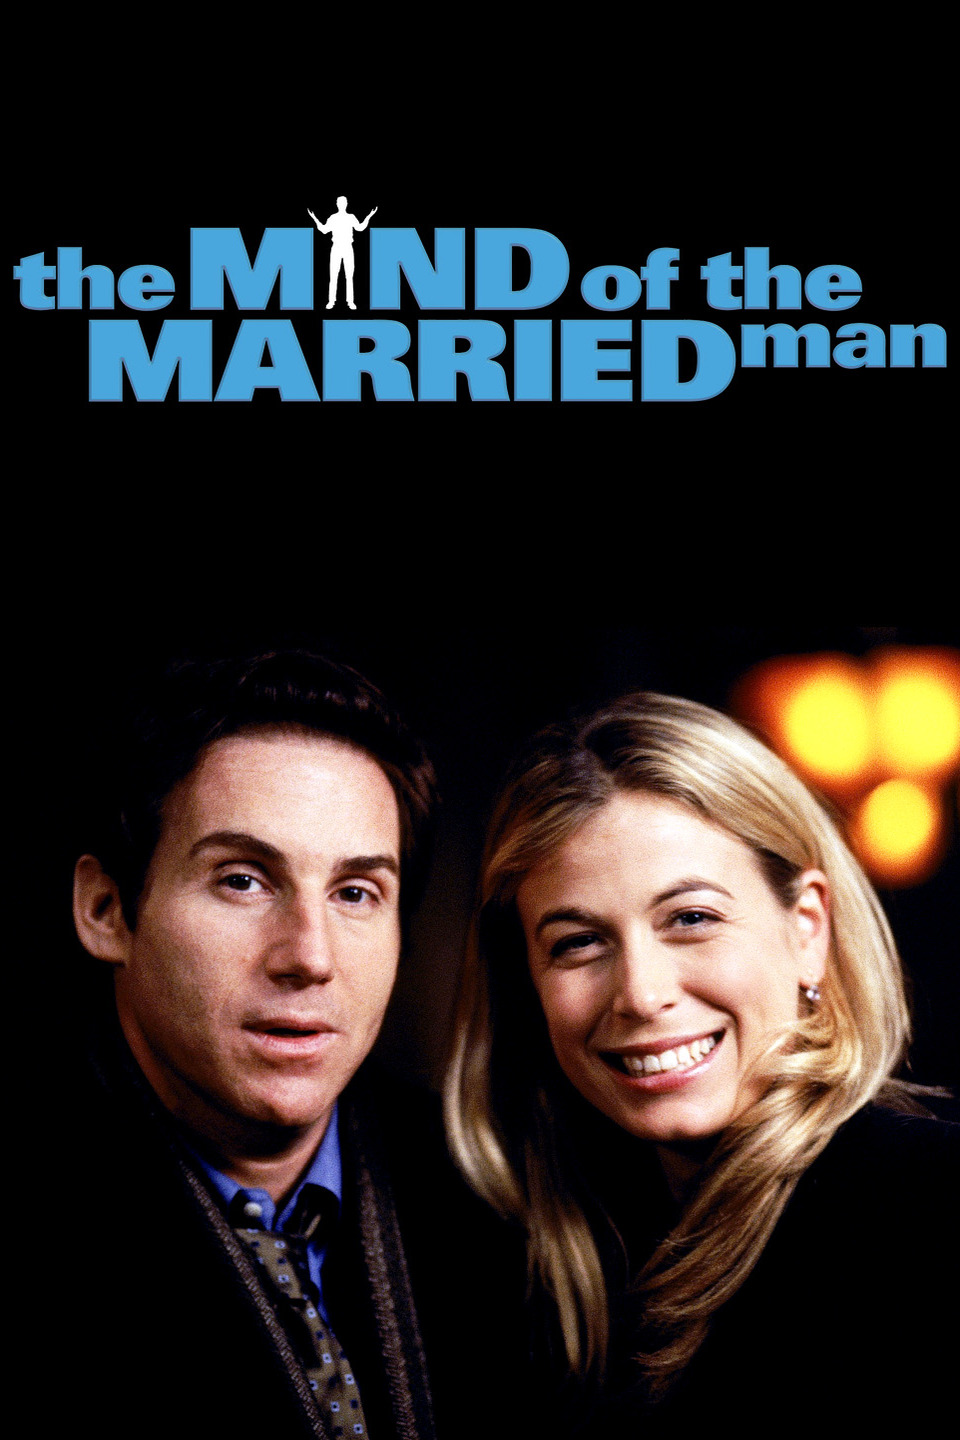 THE MIND OF THE MARRIED MAN: Mike Binder, Sonya Walger.